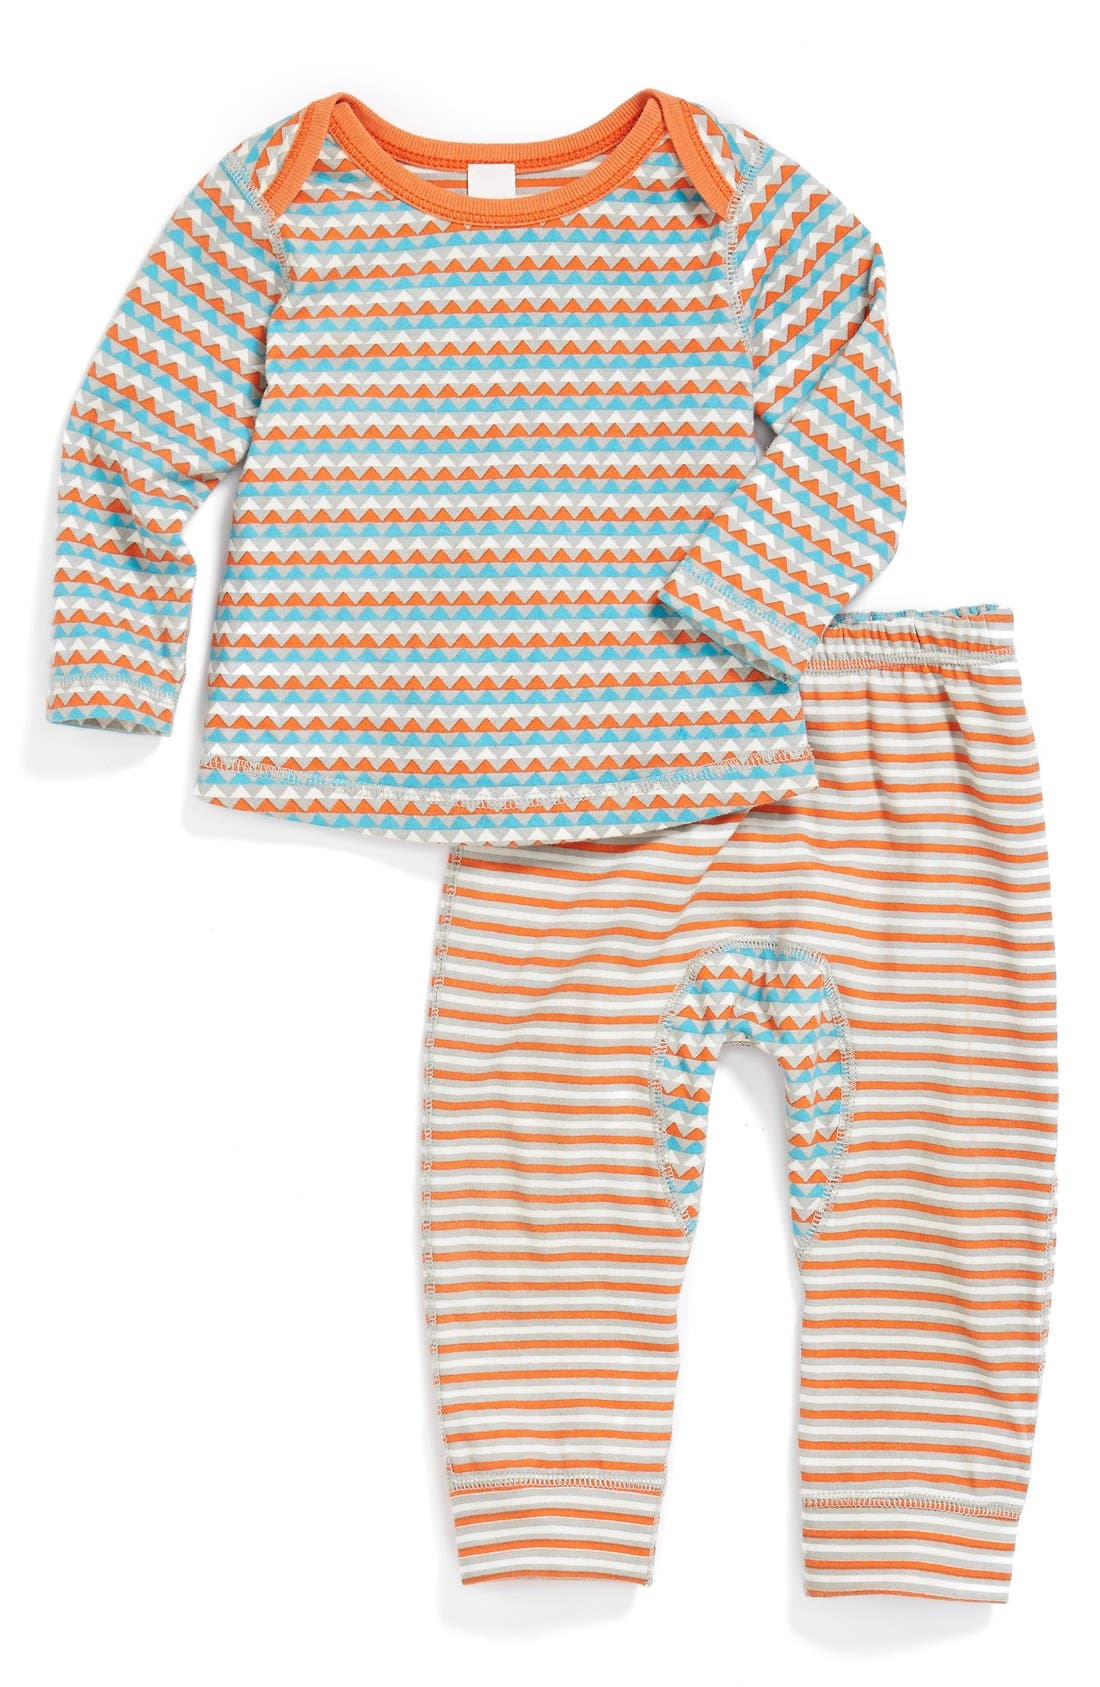 Alternate Image 1 Selected - Stem Baby Reversible Organic Cotton T-Shirt & Pants (Baby Boys) (Nordstrom Exclusive)